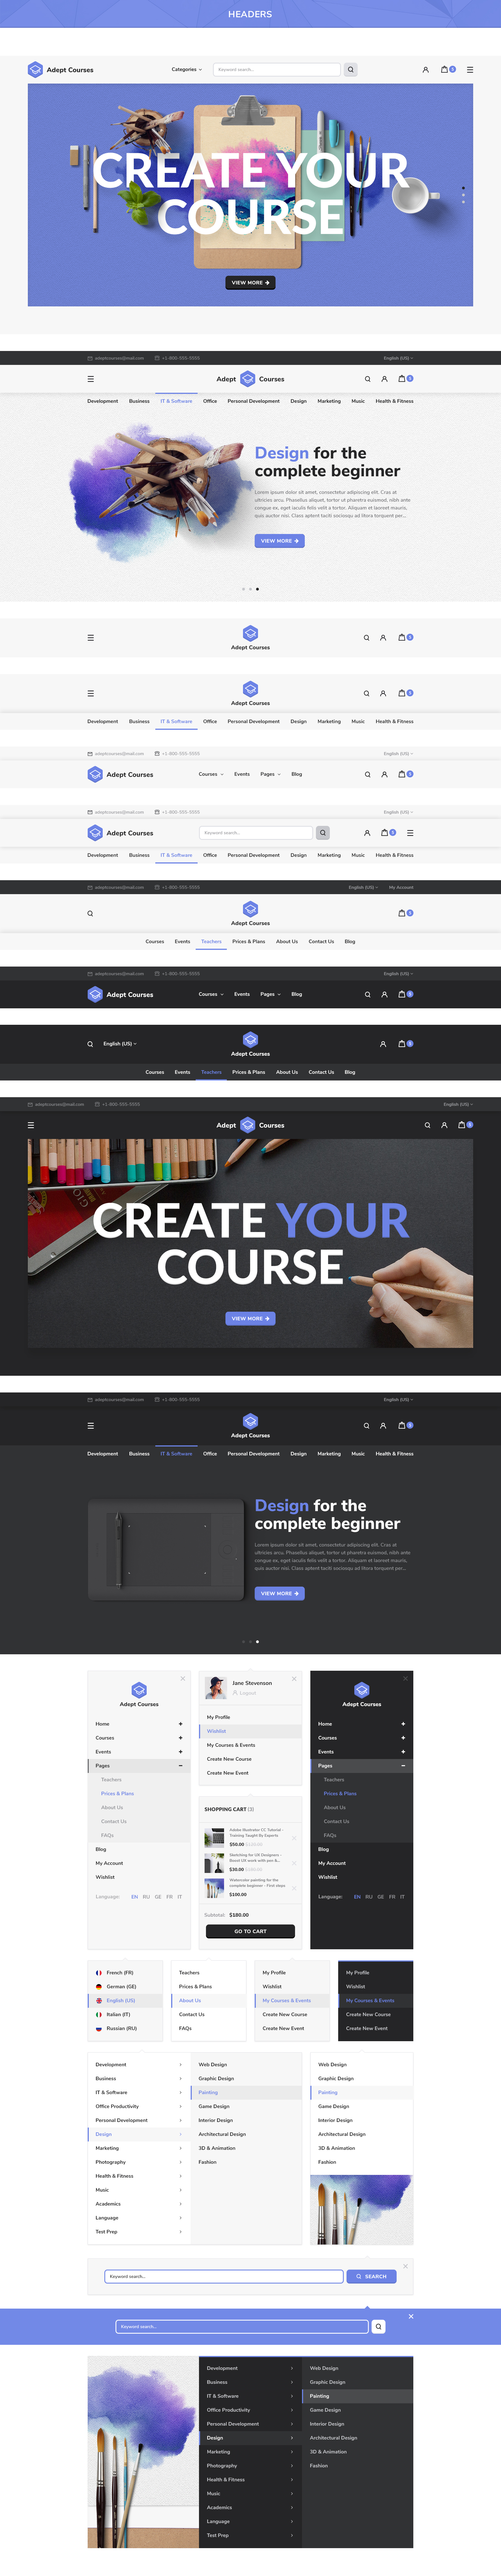 Adept courses learning management system psd kit by bestwebsoft preview11 all instructorsg preview12 instructor pageg preview13 member profileg preview14 create a courseg preview15 blog indexg baditri Images